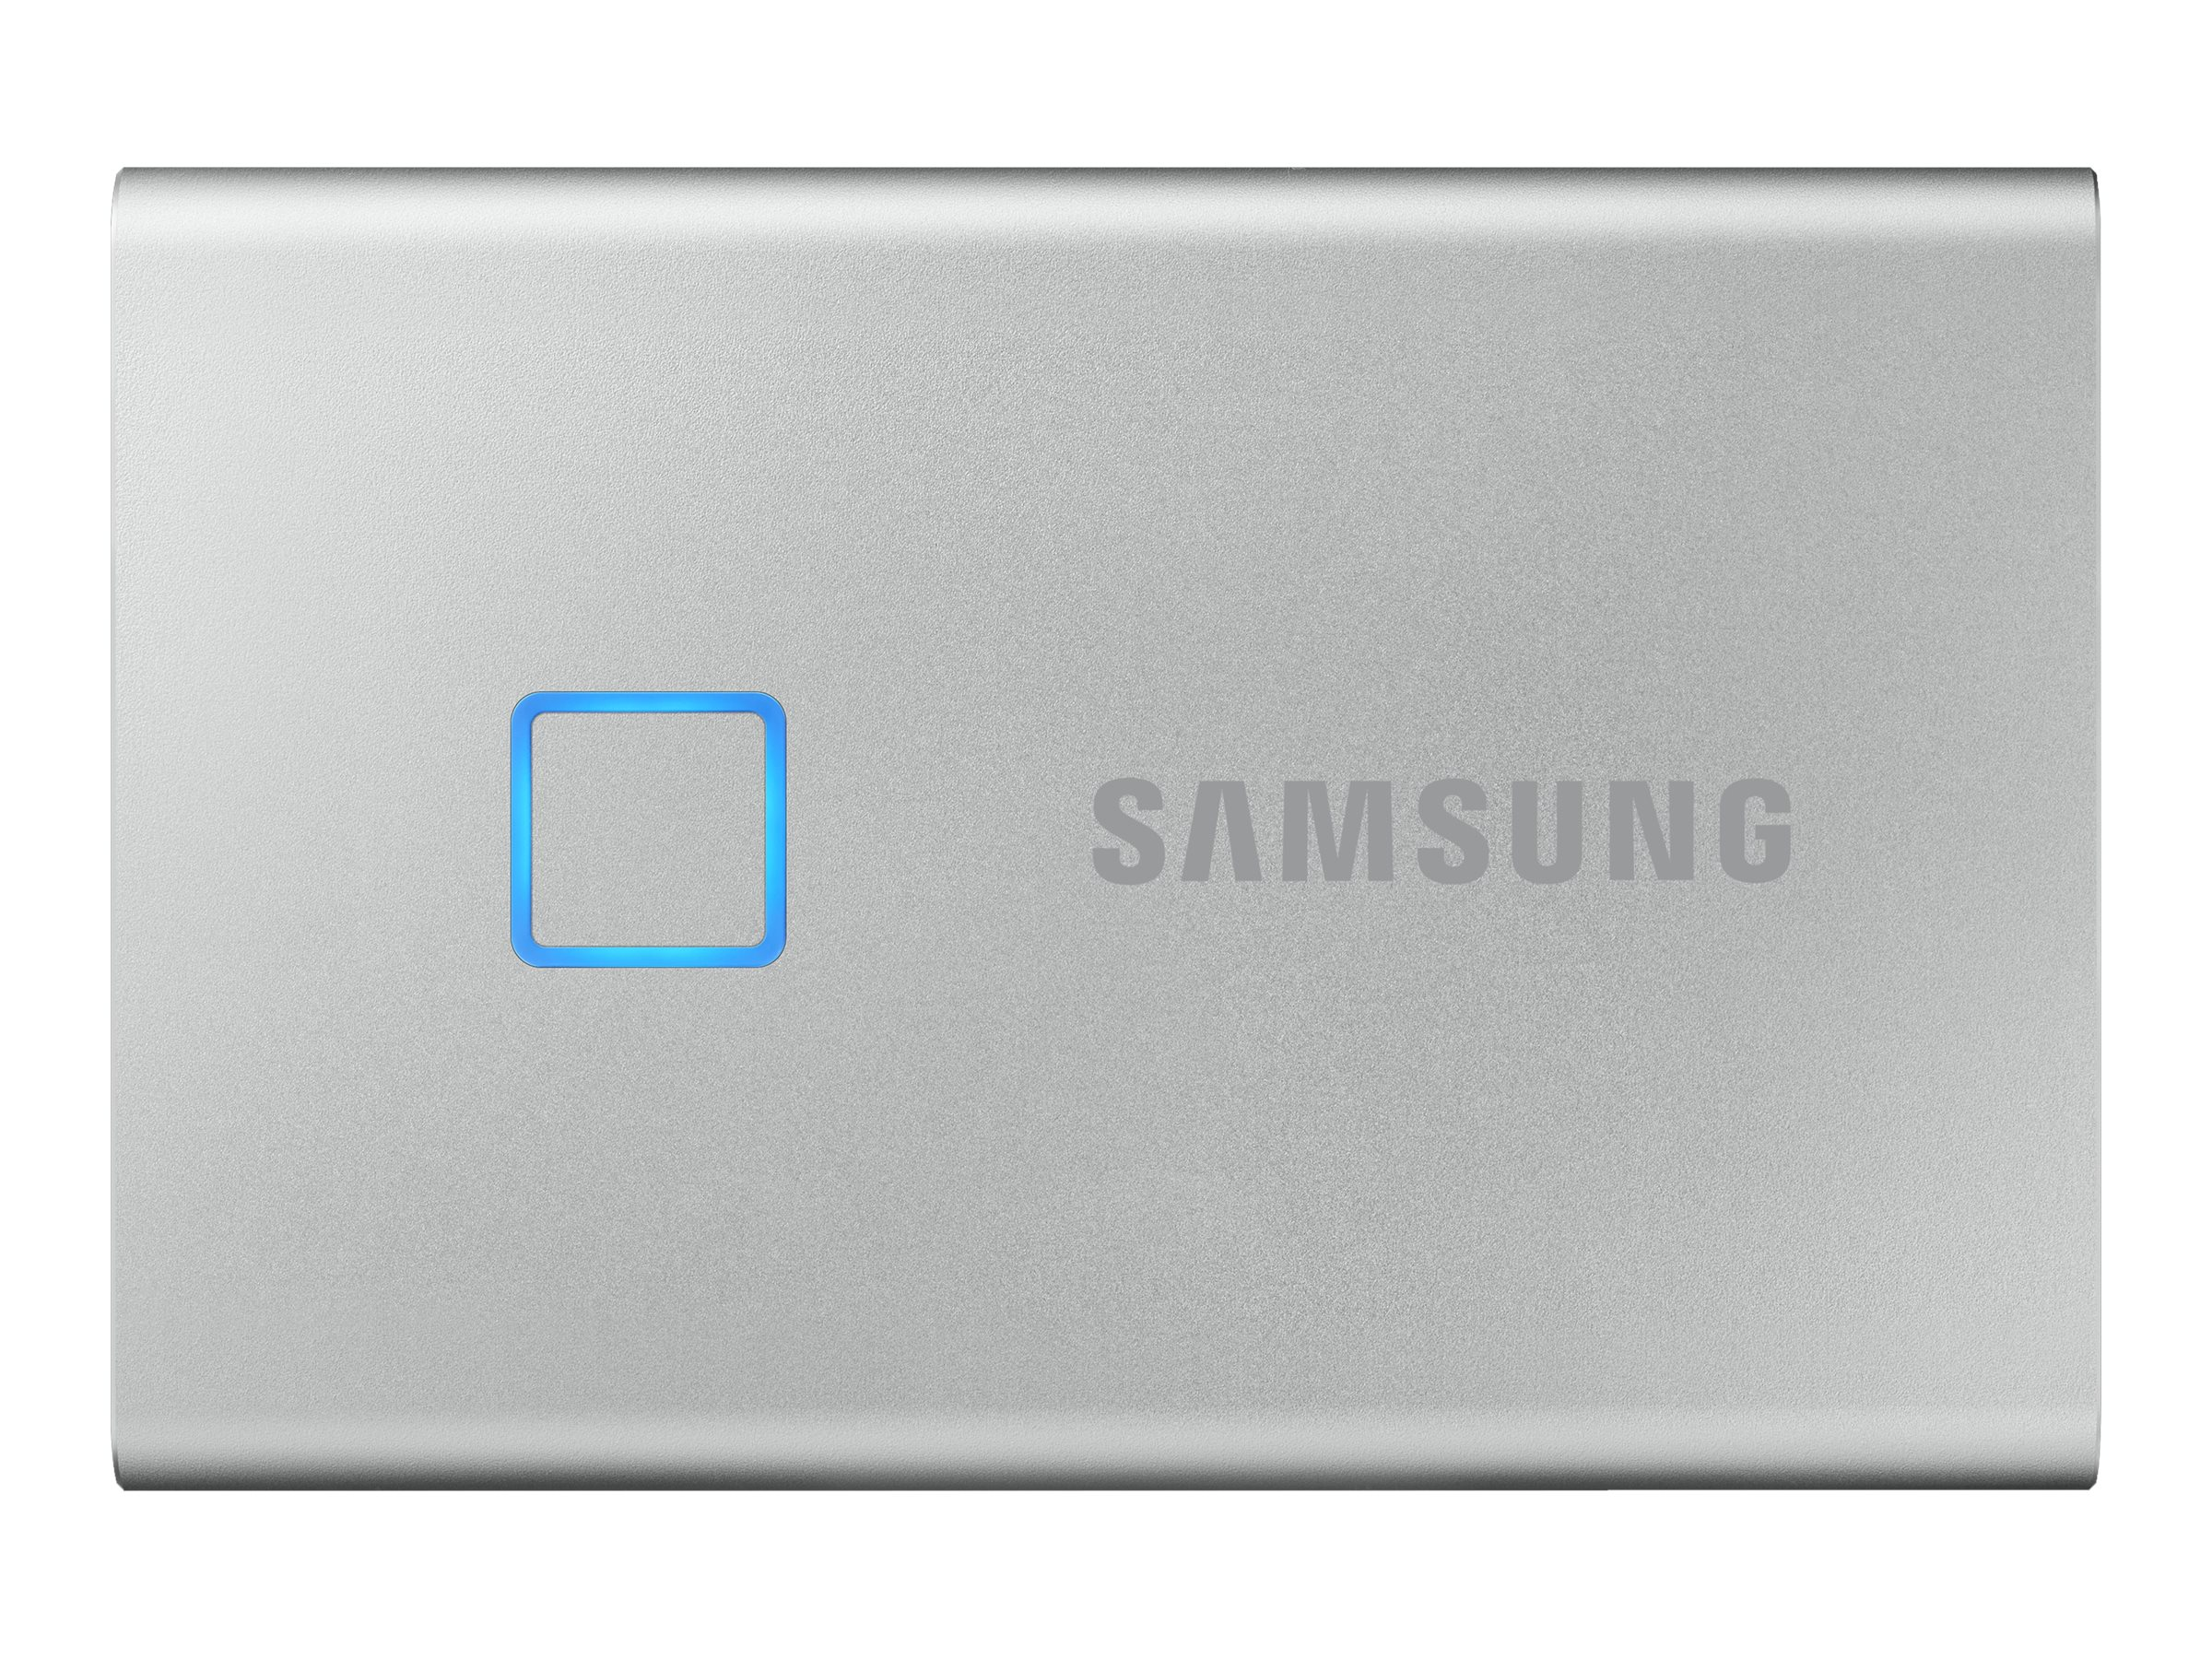 Samsung Portable SSD T7 Touch MU-PC500S - solid state drive - 500 GB - USB 3.2 Gen 2 -